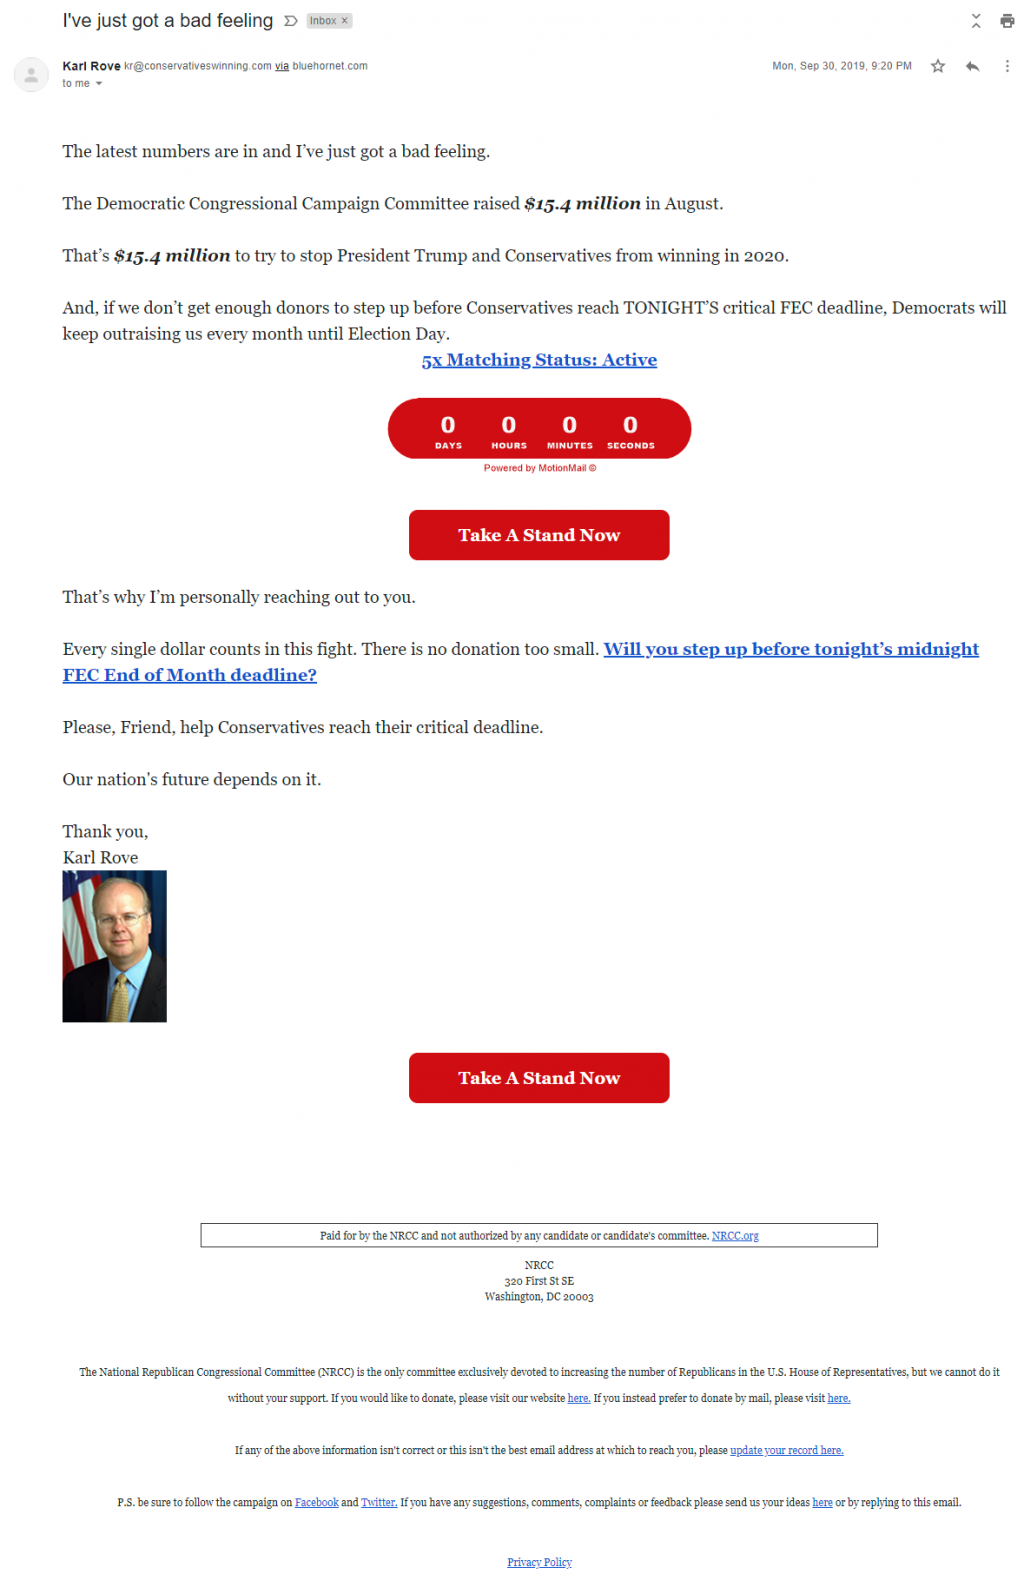 Karl Rove's email for the National Republican Congressional Committee